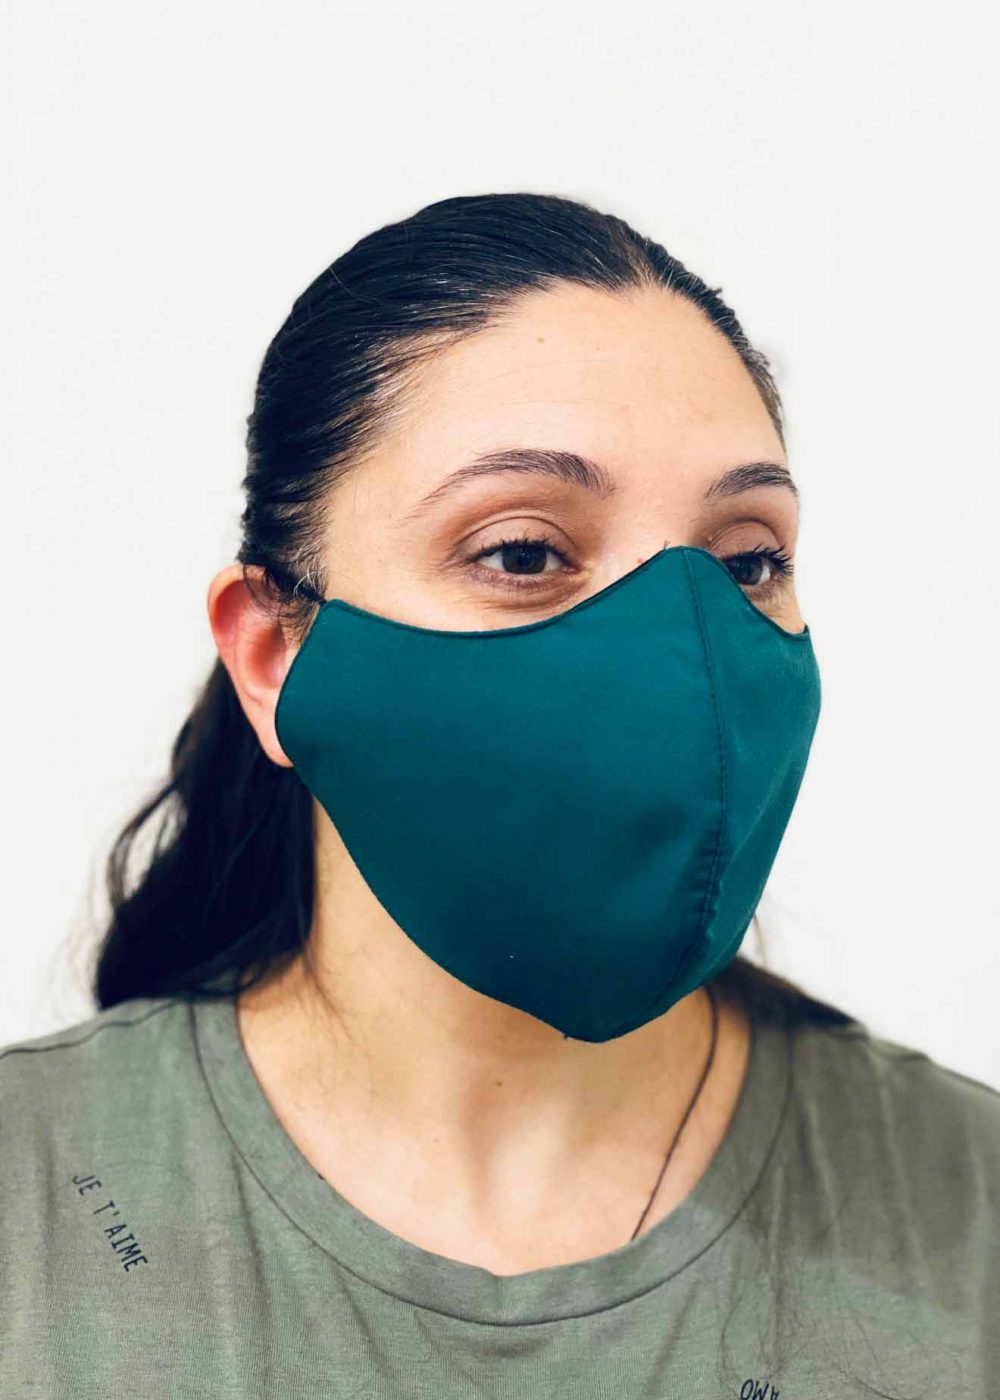 Ladies DHHS Green Face Mask by Laundry Box Melbourne